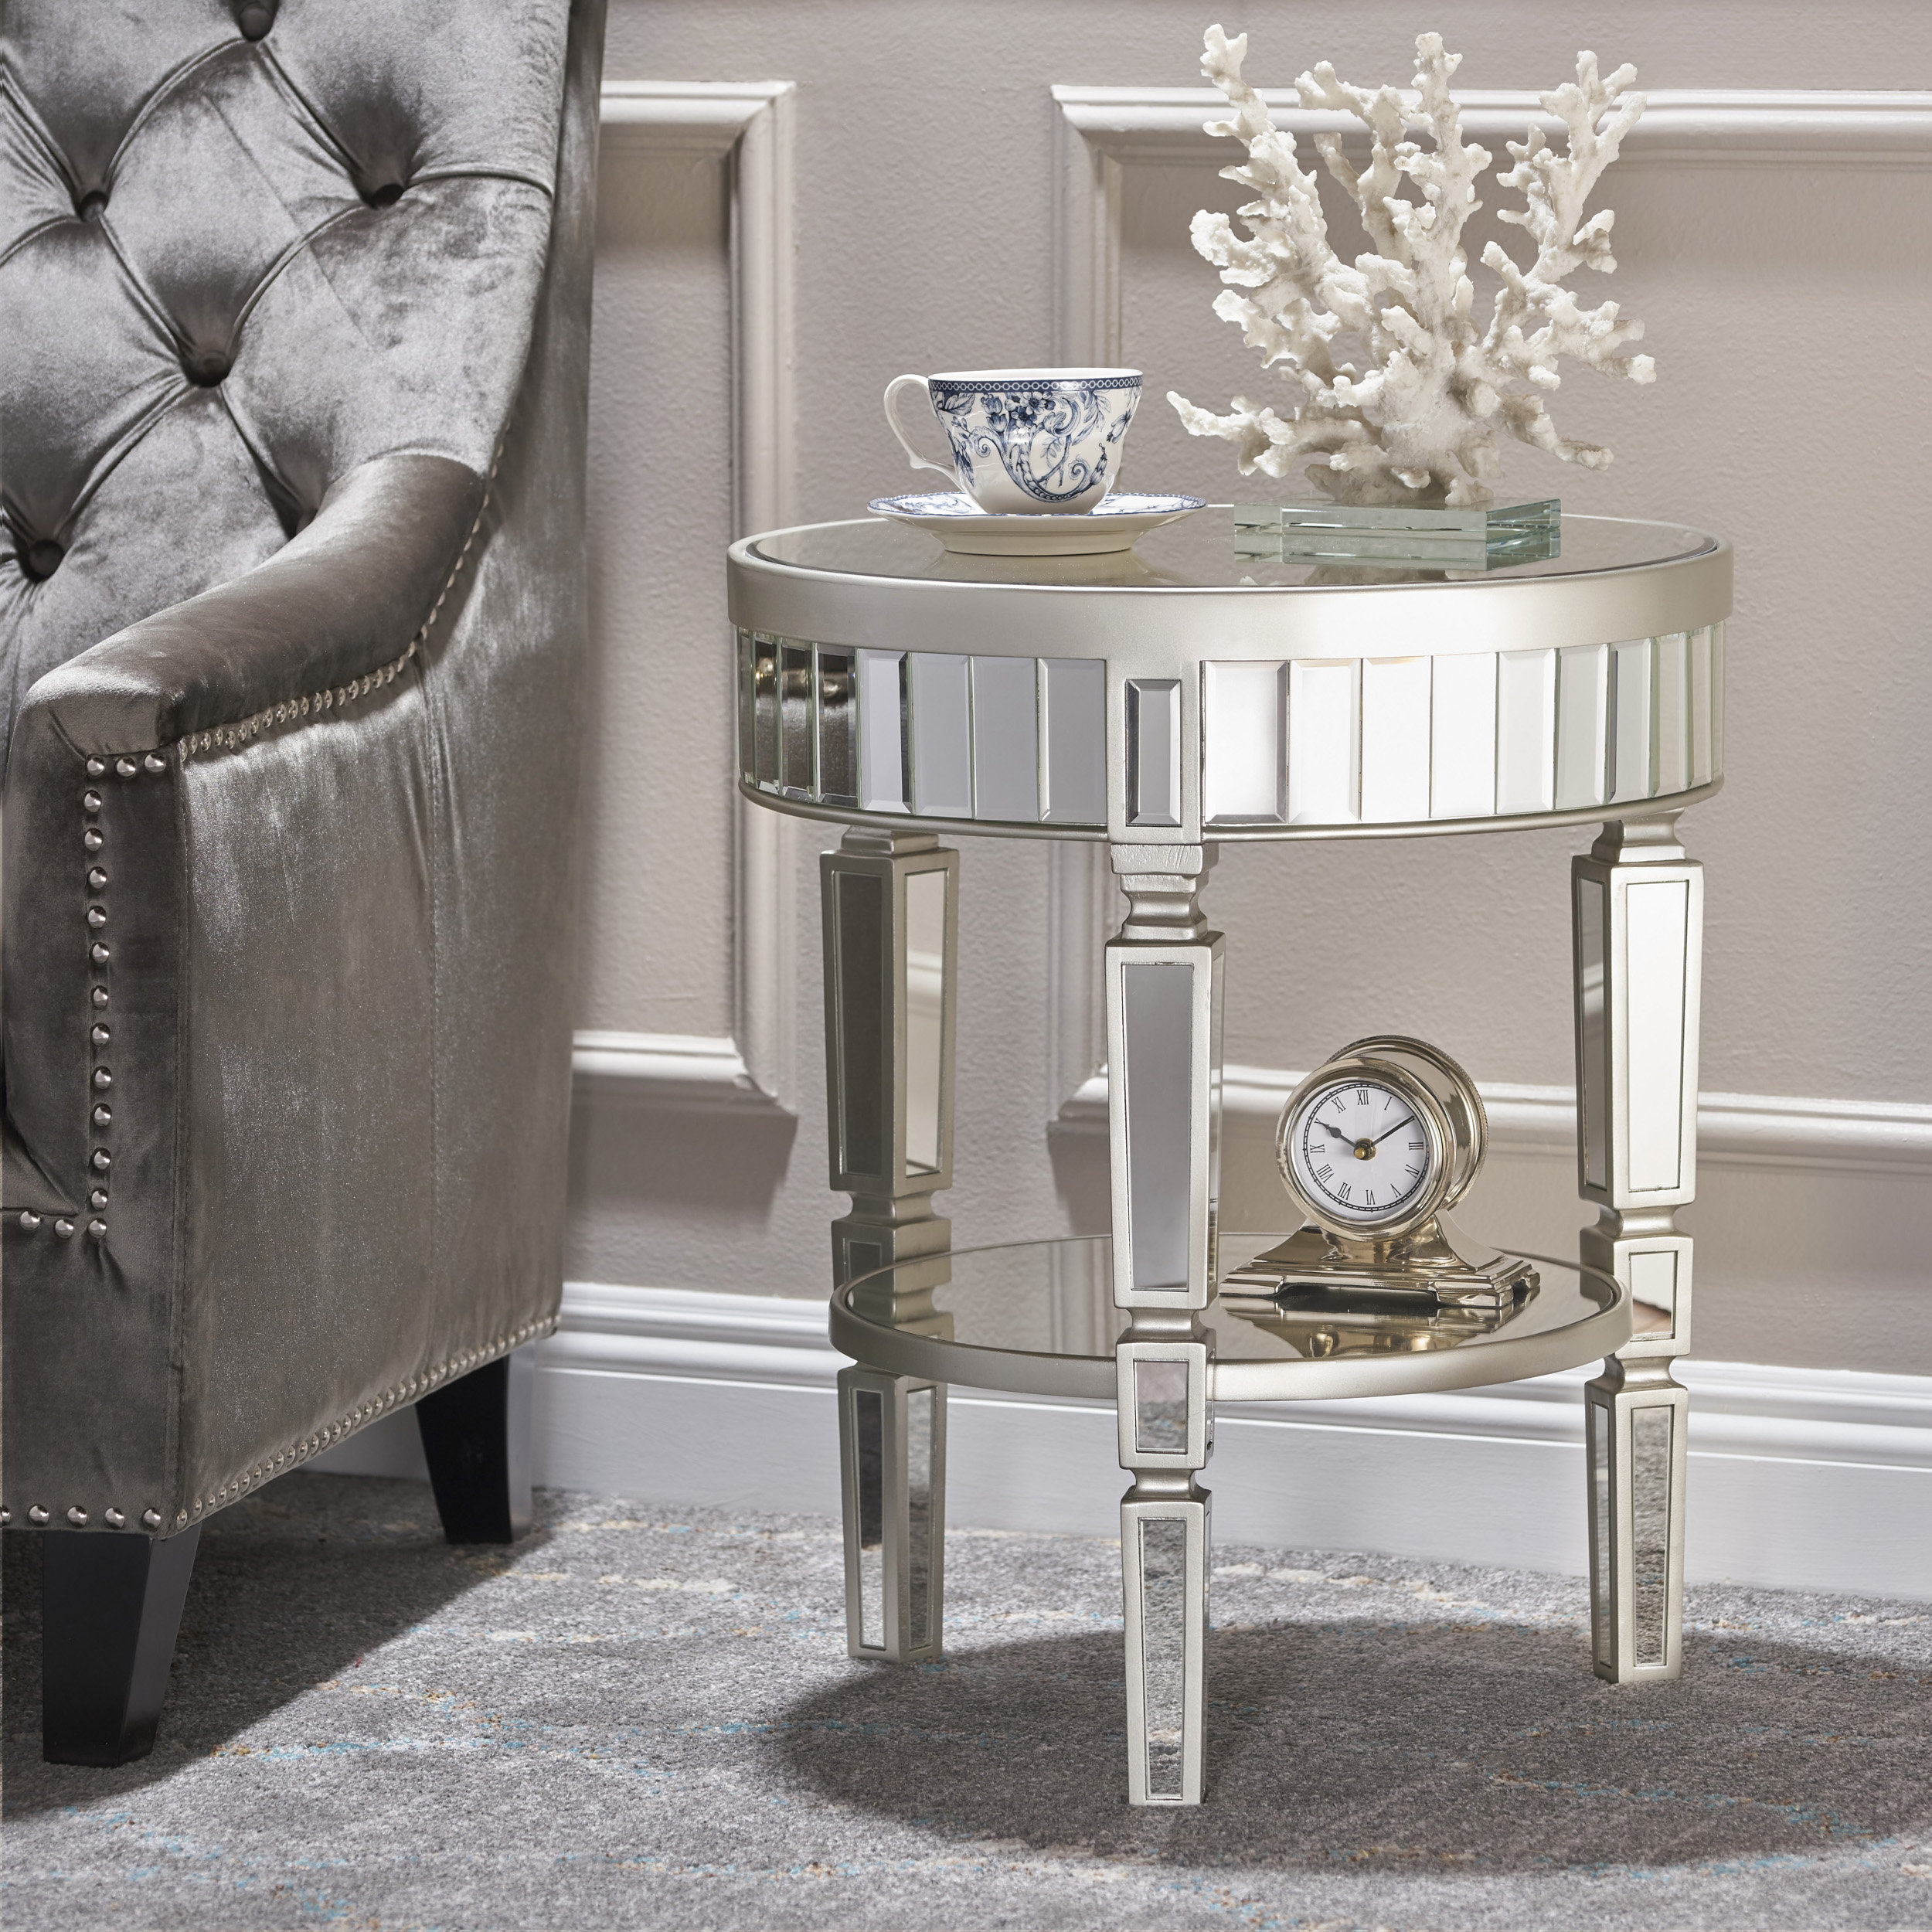 lemmon mirrored end table reviews joss main bedroom tables spray paint over painted wood glass base bedside lamps coffee kits home hardware lawn furniture corner cabinet